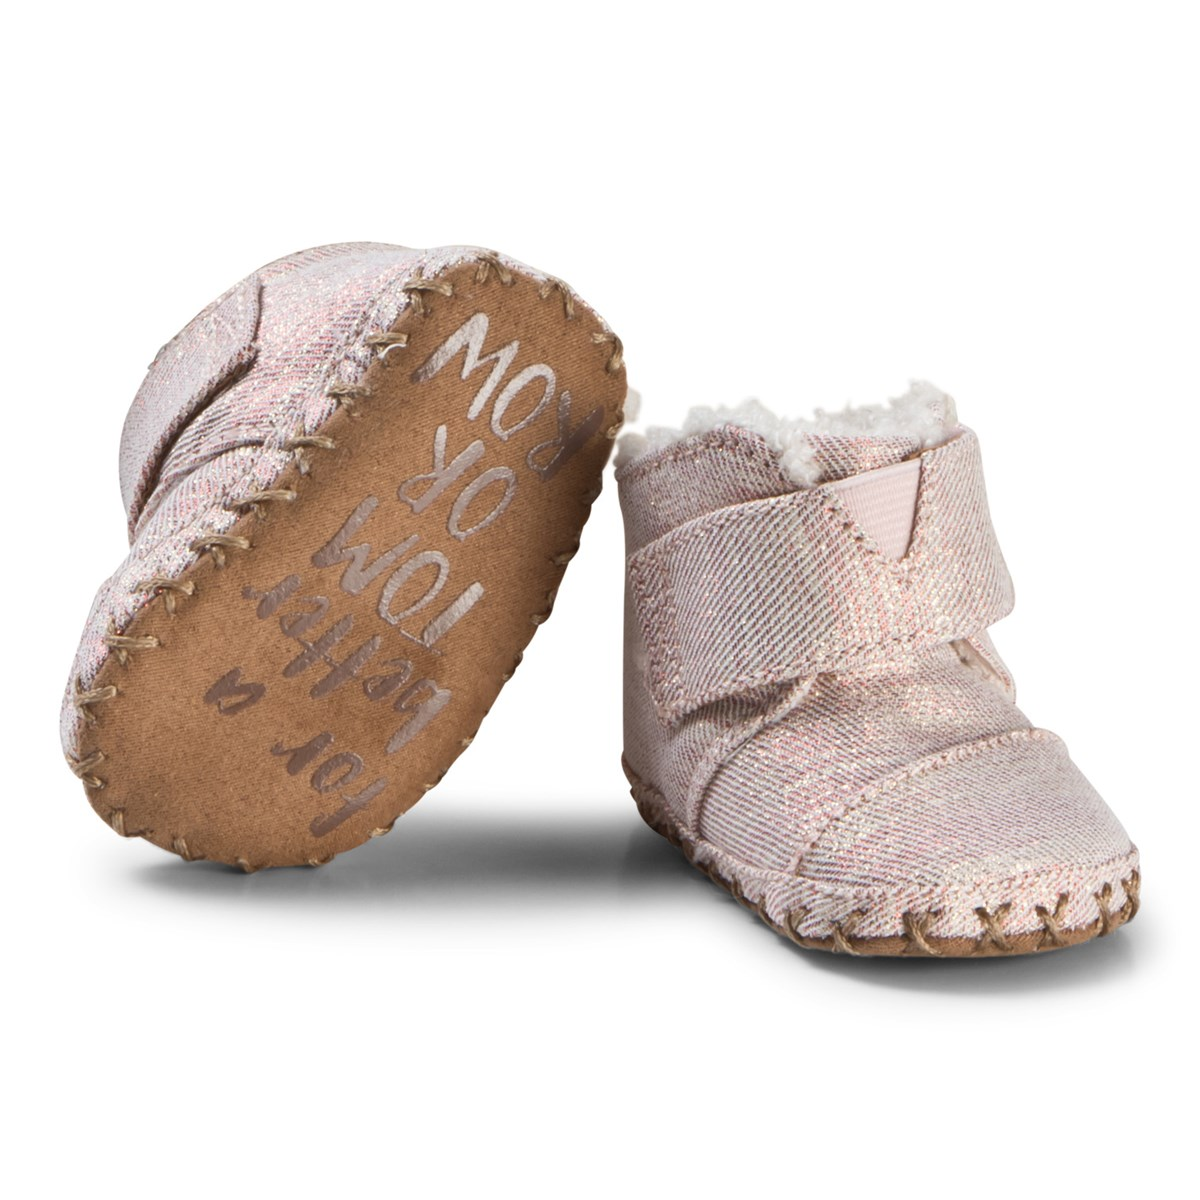 d18872d2bf2 Toms - Rose Gold Twill Glimmer Tiny TOMS Cuna Crib Shoes - Babyshop.com